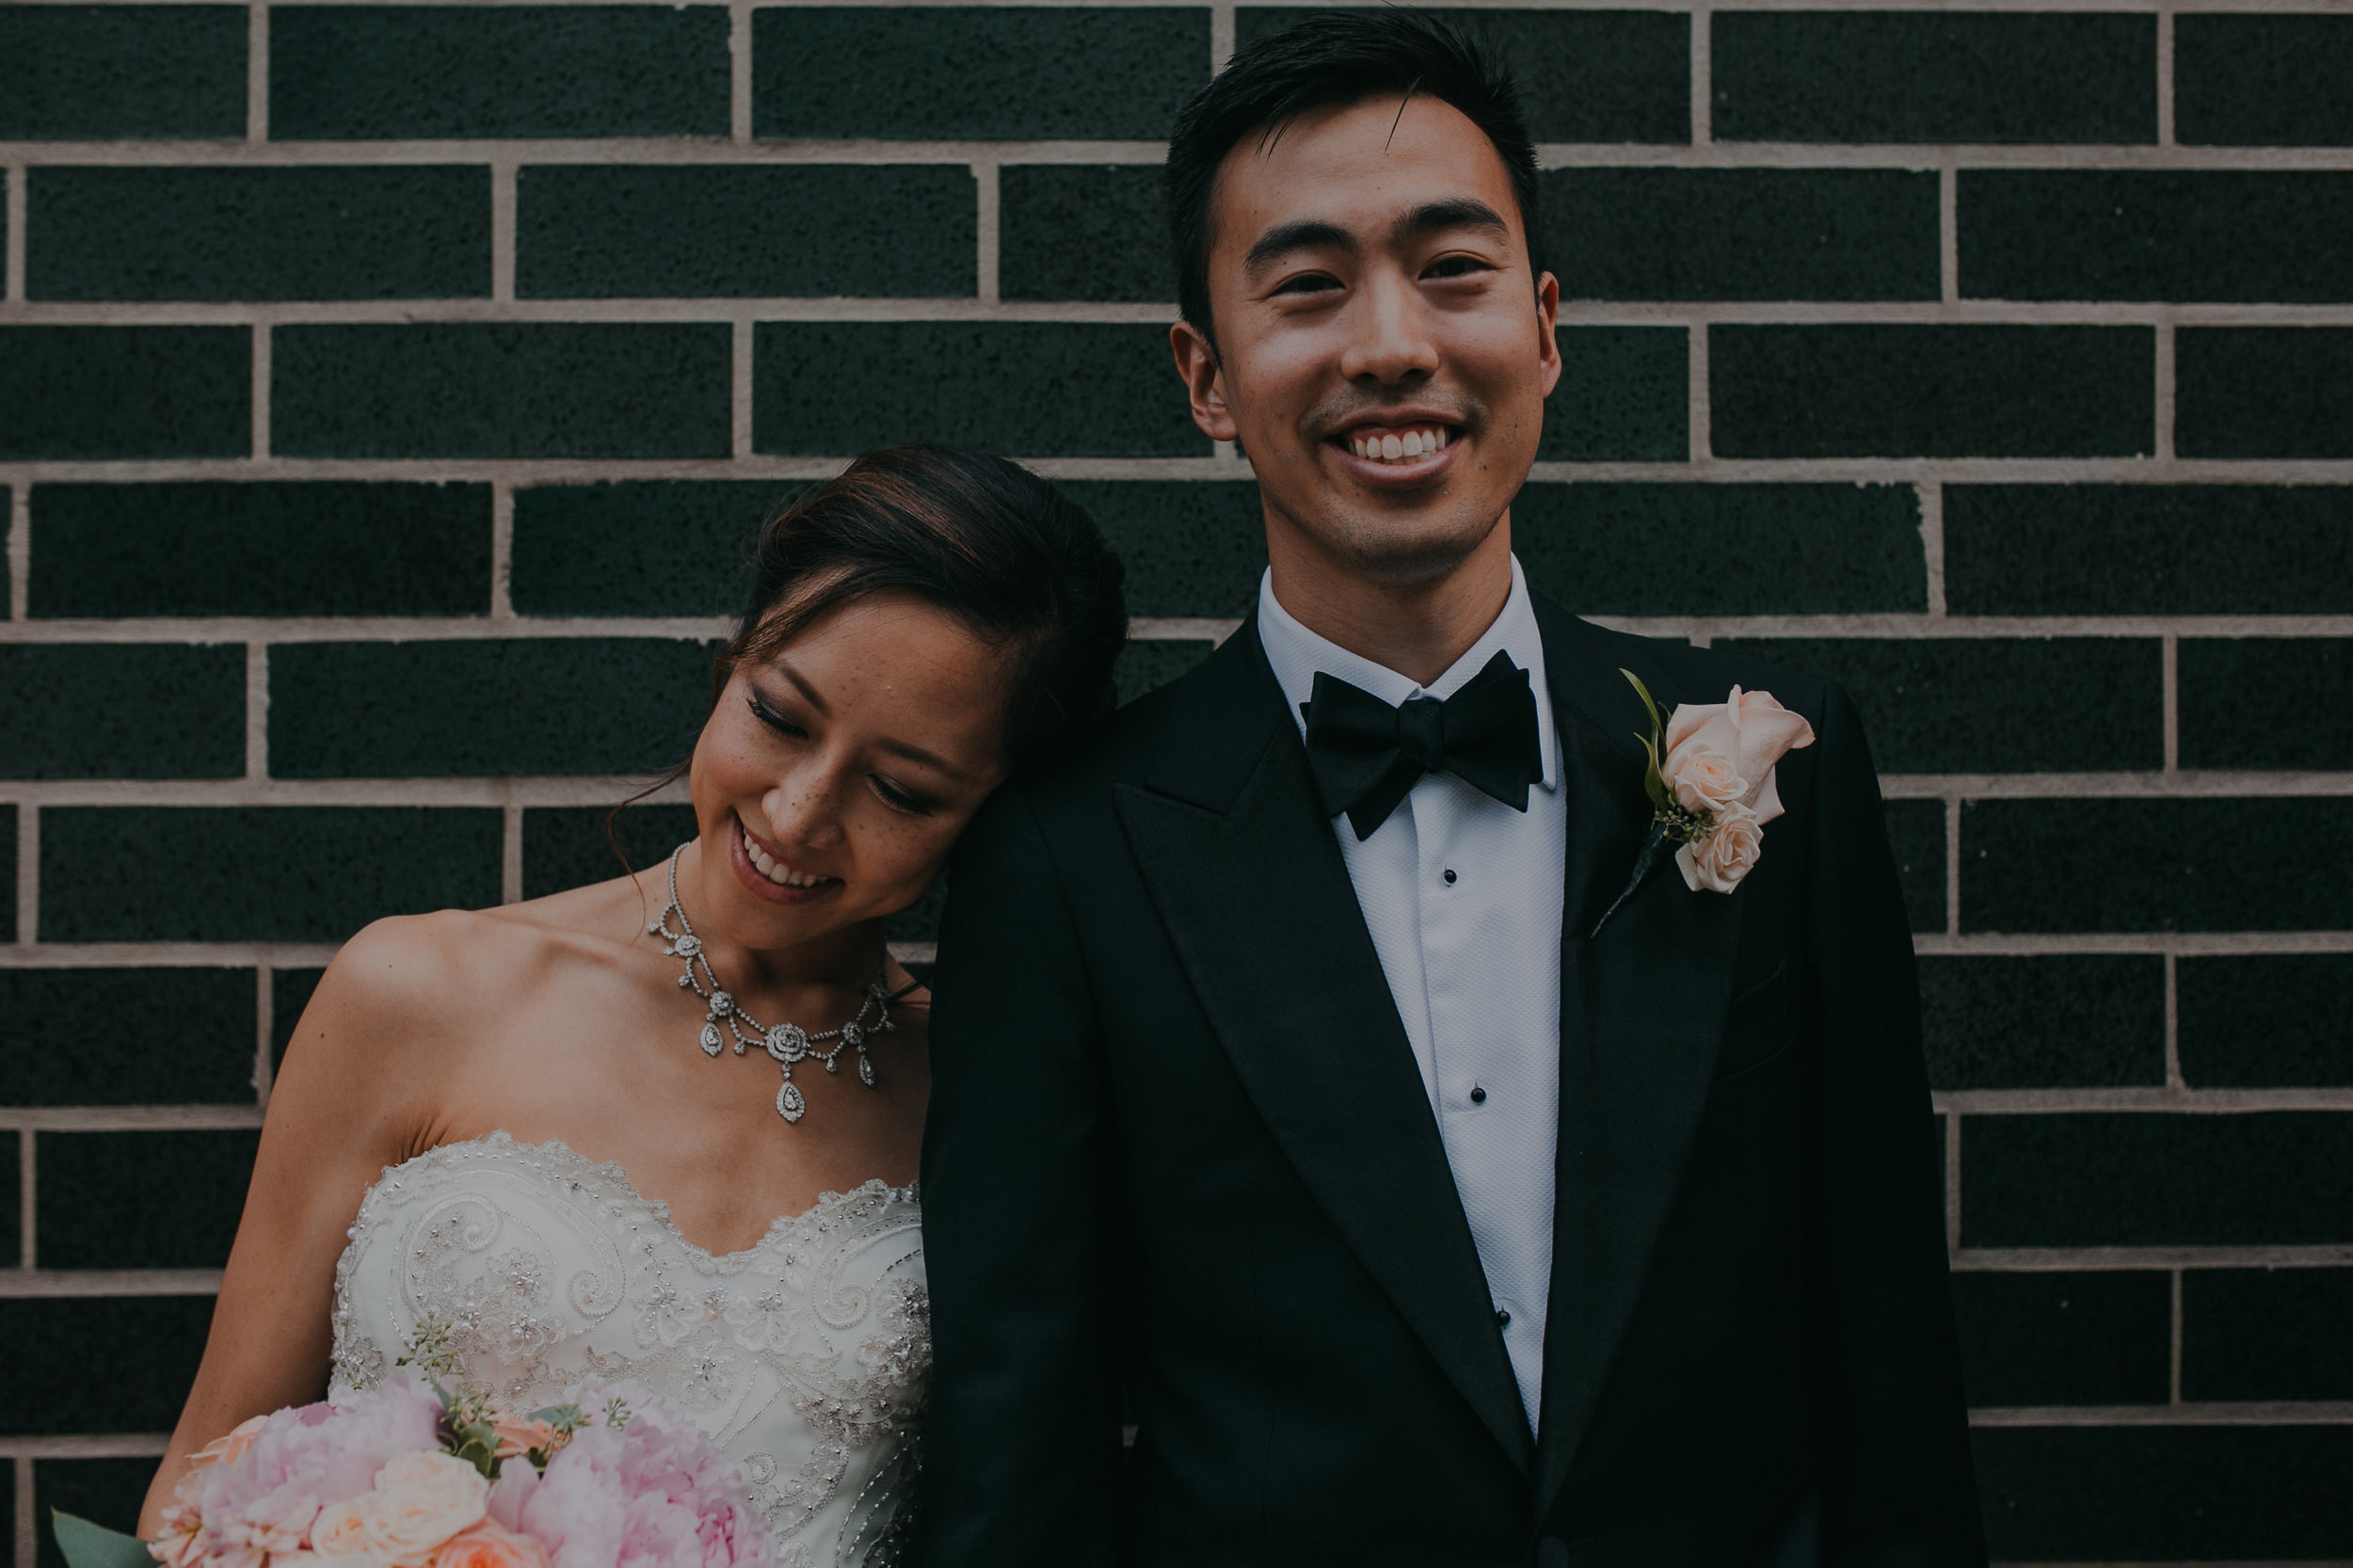 """Scott Cheng - """"BEST WEDDING PLANNNERRRRR EVERRRRRRRR. Only been married once so I can't compare to anyone else, but I can't imagine someone doing a better job!"""""""